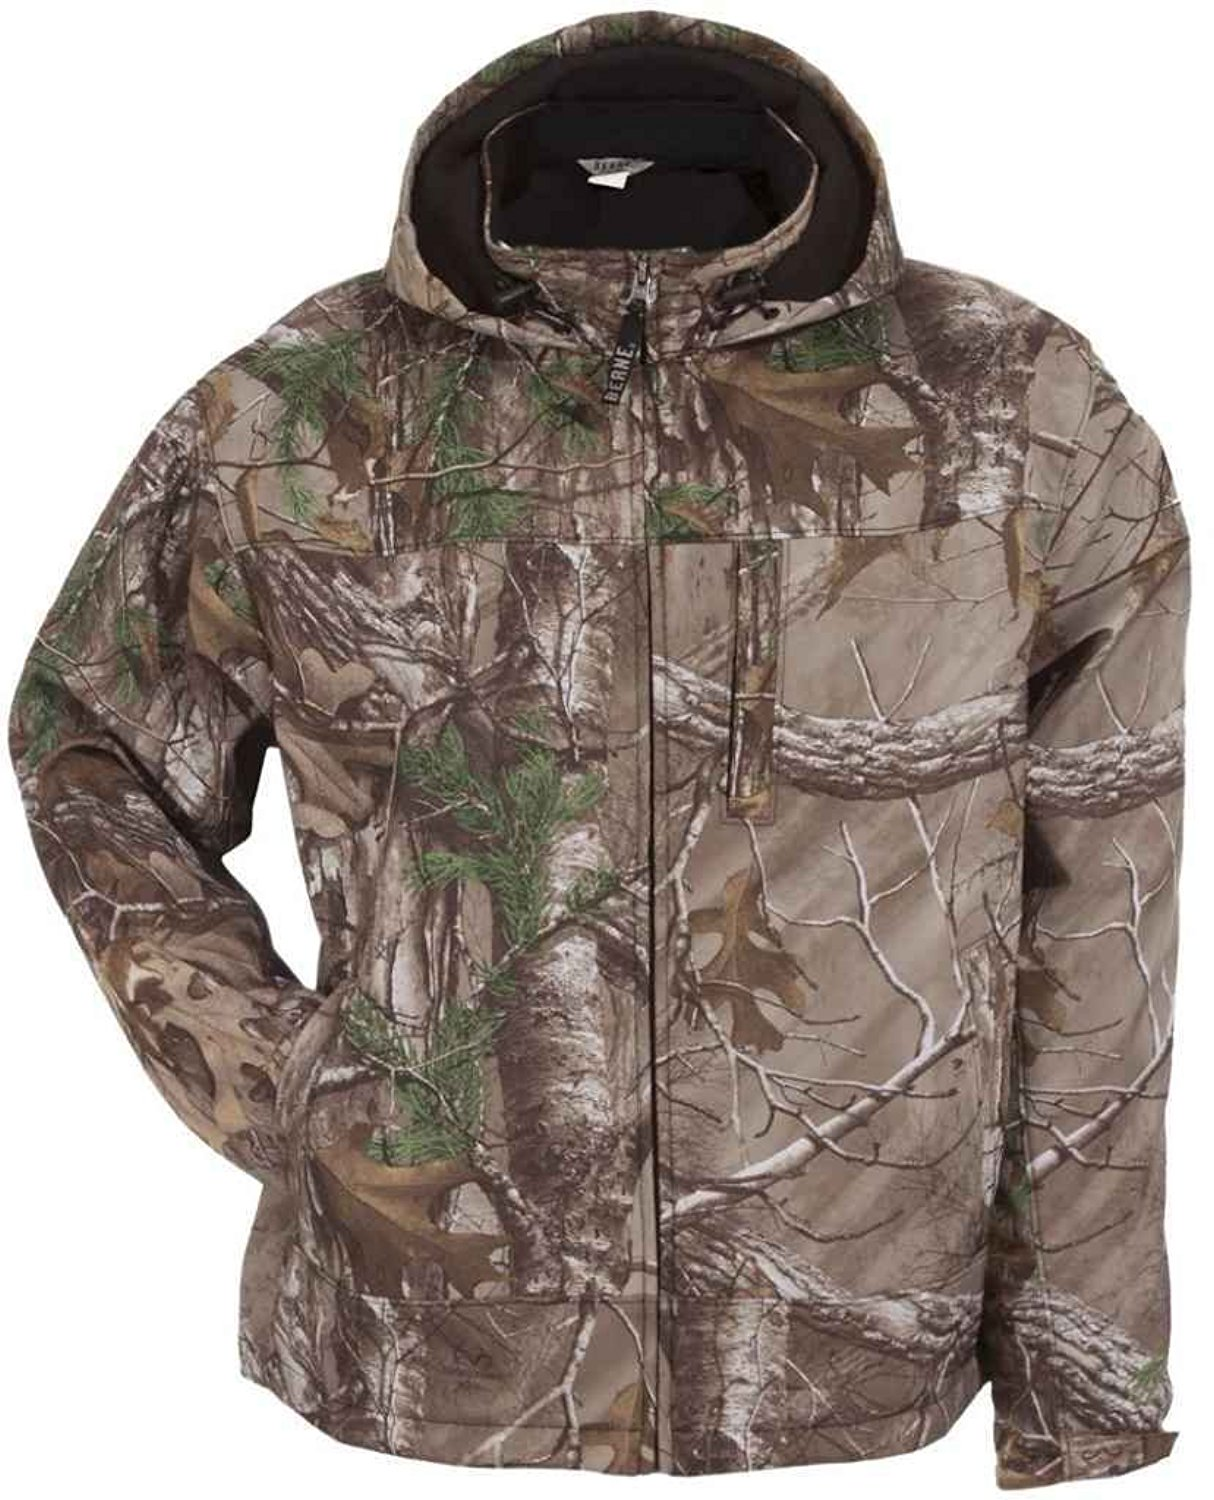 f3f0e206c274d Get Quotations · Berne Men s Shedhorn Realtree Camo Softshell Jacket 3XL  and 4XL - Gjs202xtar X